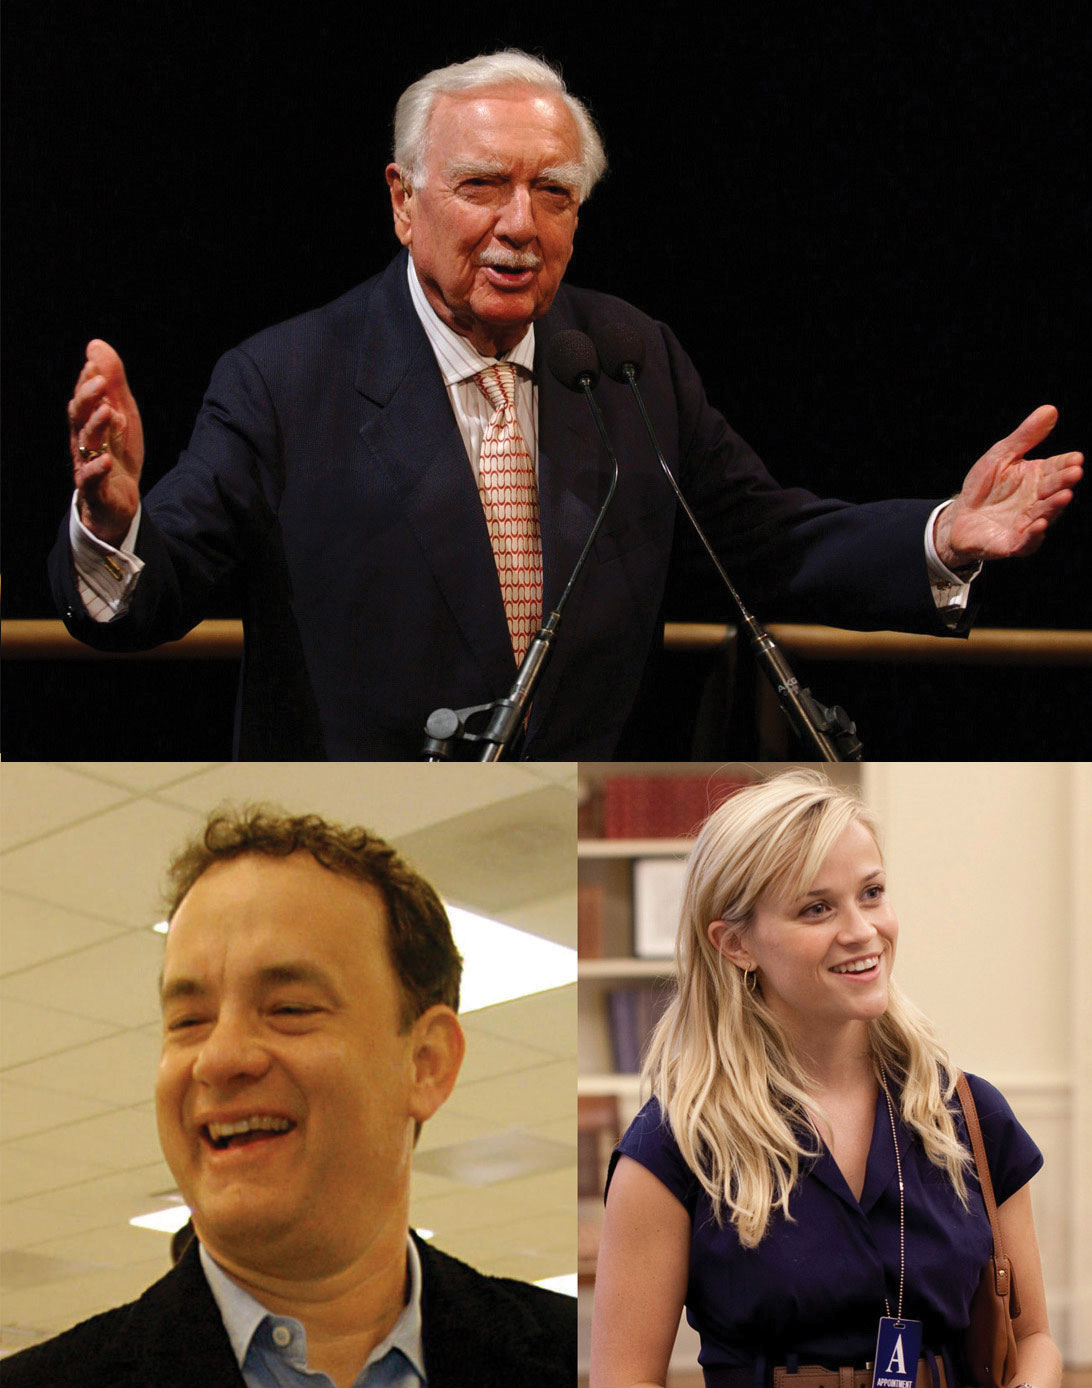 Collage: Walter Cronkite, Tom Hanks, and Reese Witherspoon